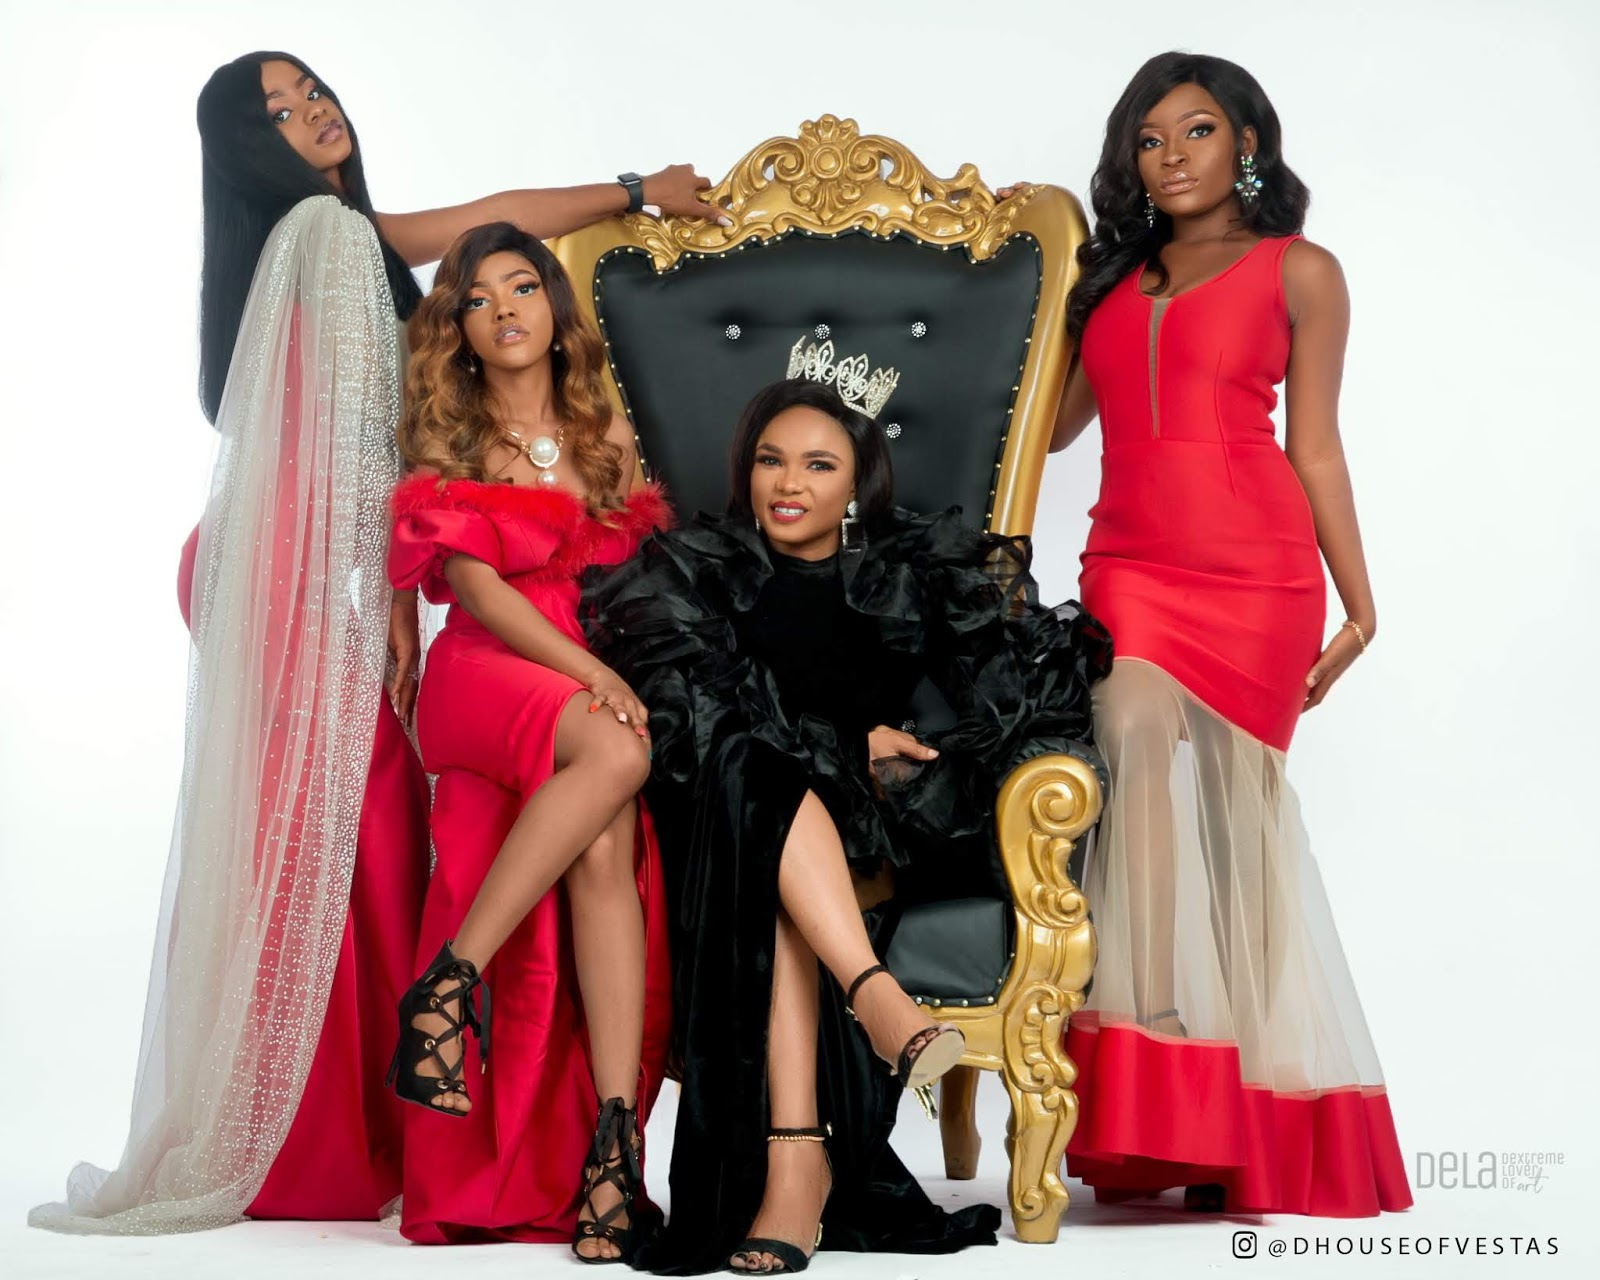 House Of Vestas THE LIONESS AND HER CUBS Featuring Actress Iyabo Ojo Priscilla Ojo Miss Lucy Thacutegemini6